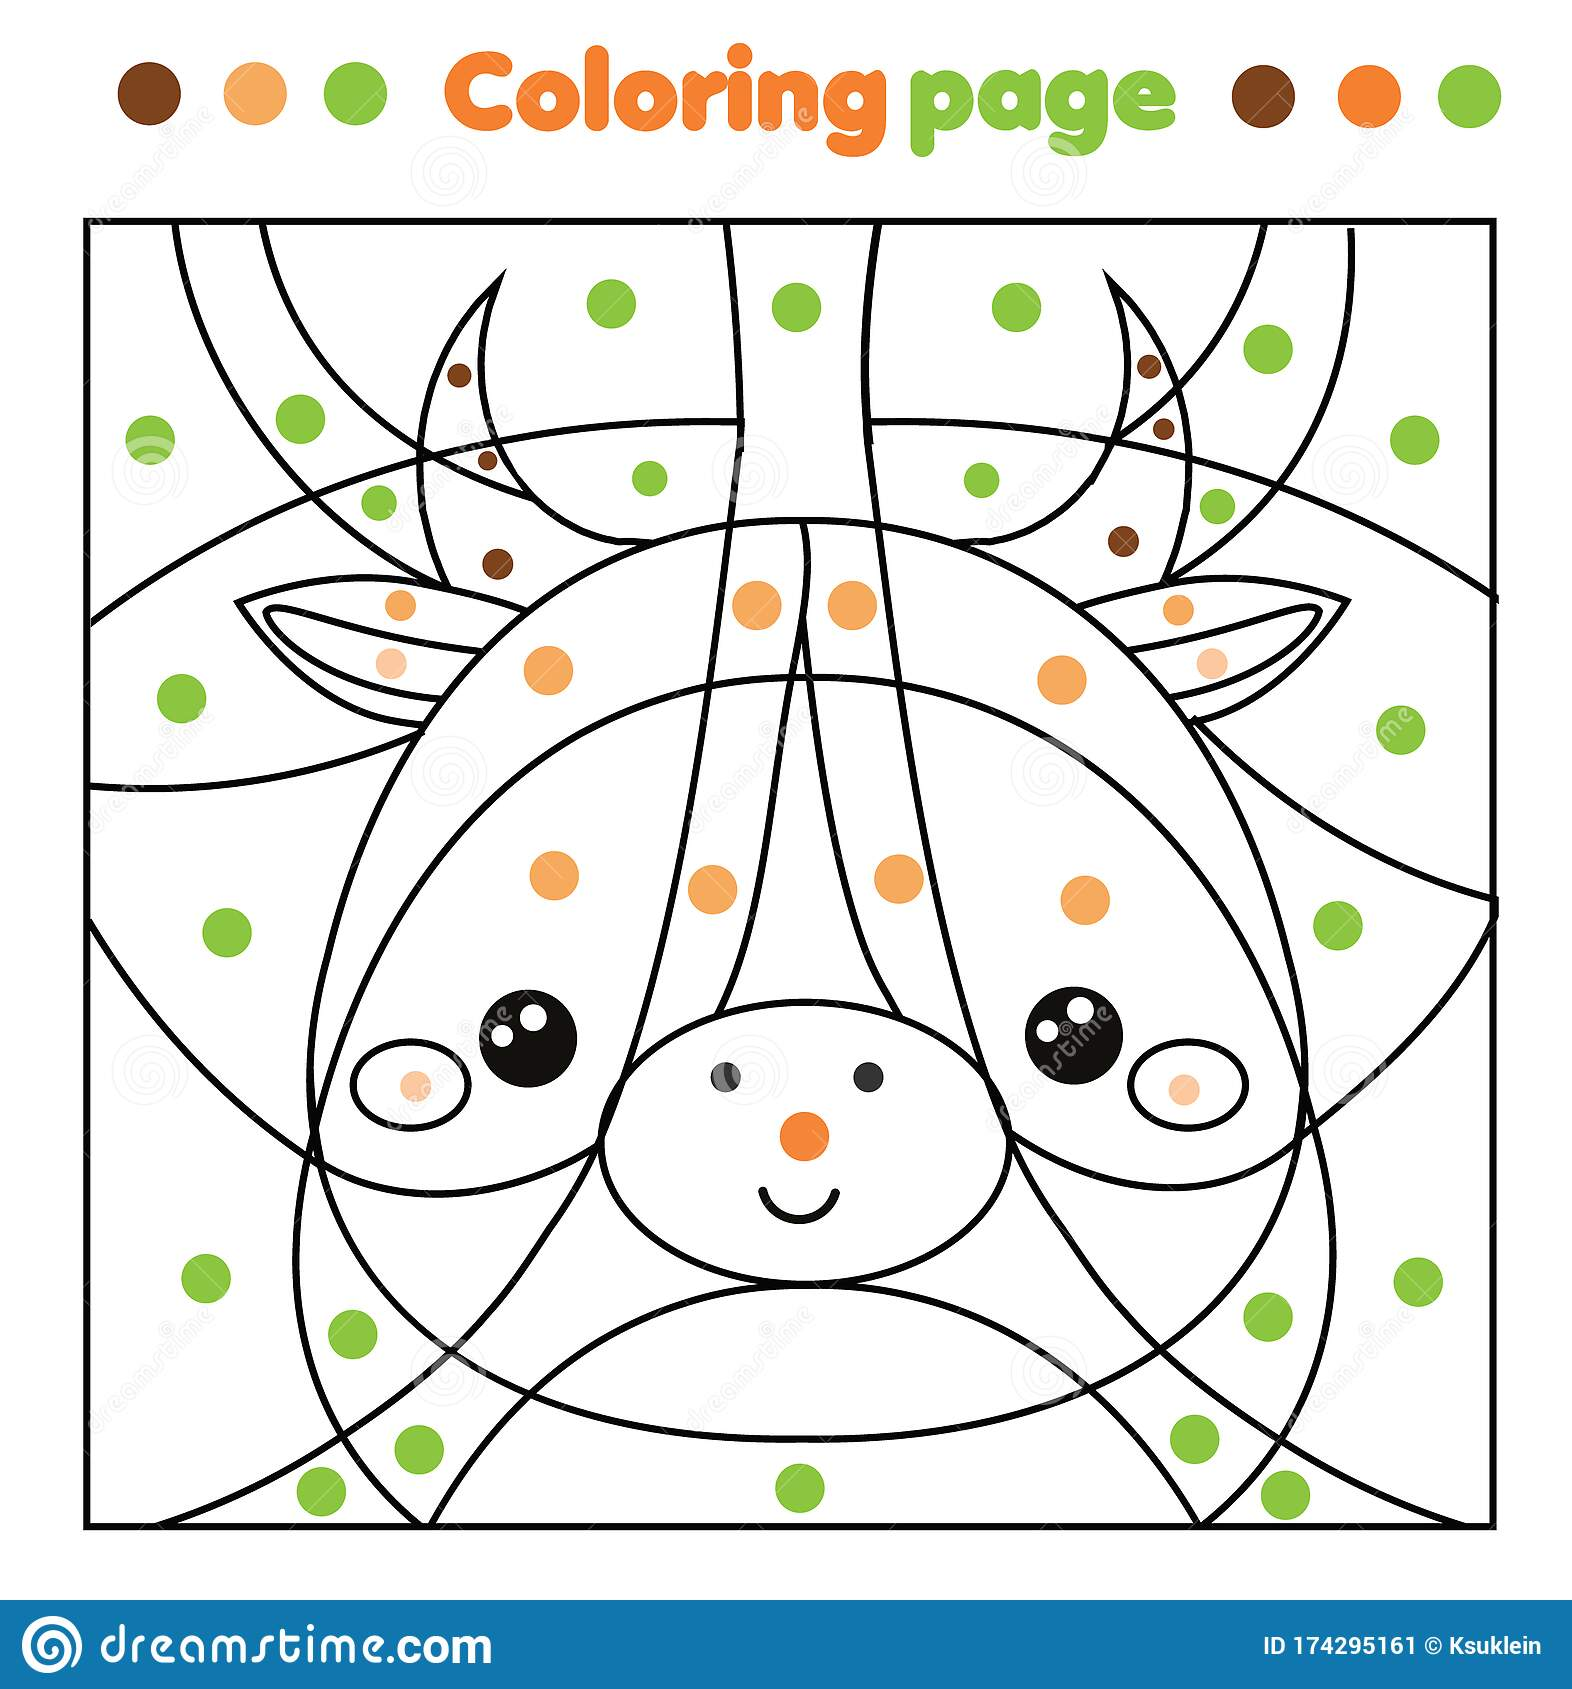 Cow Coloring Page Color By Dots Printable Activity